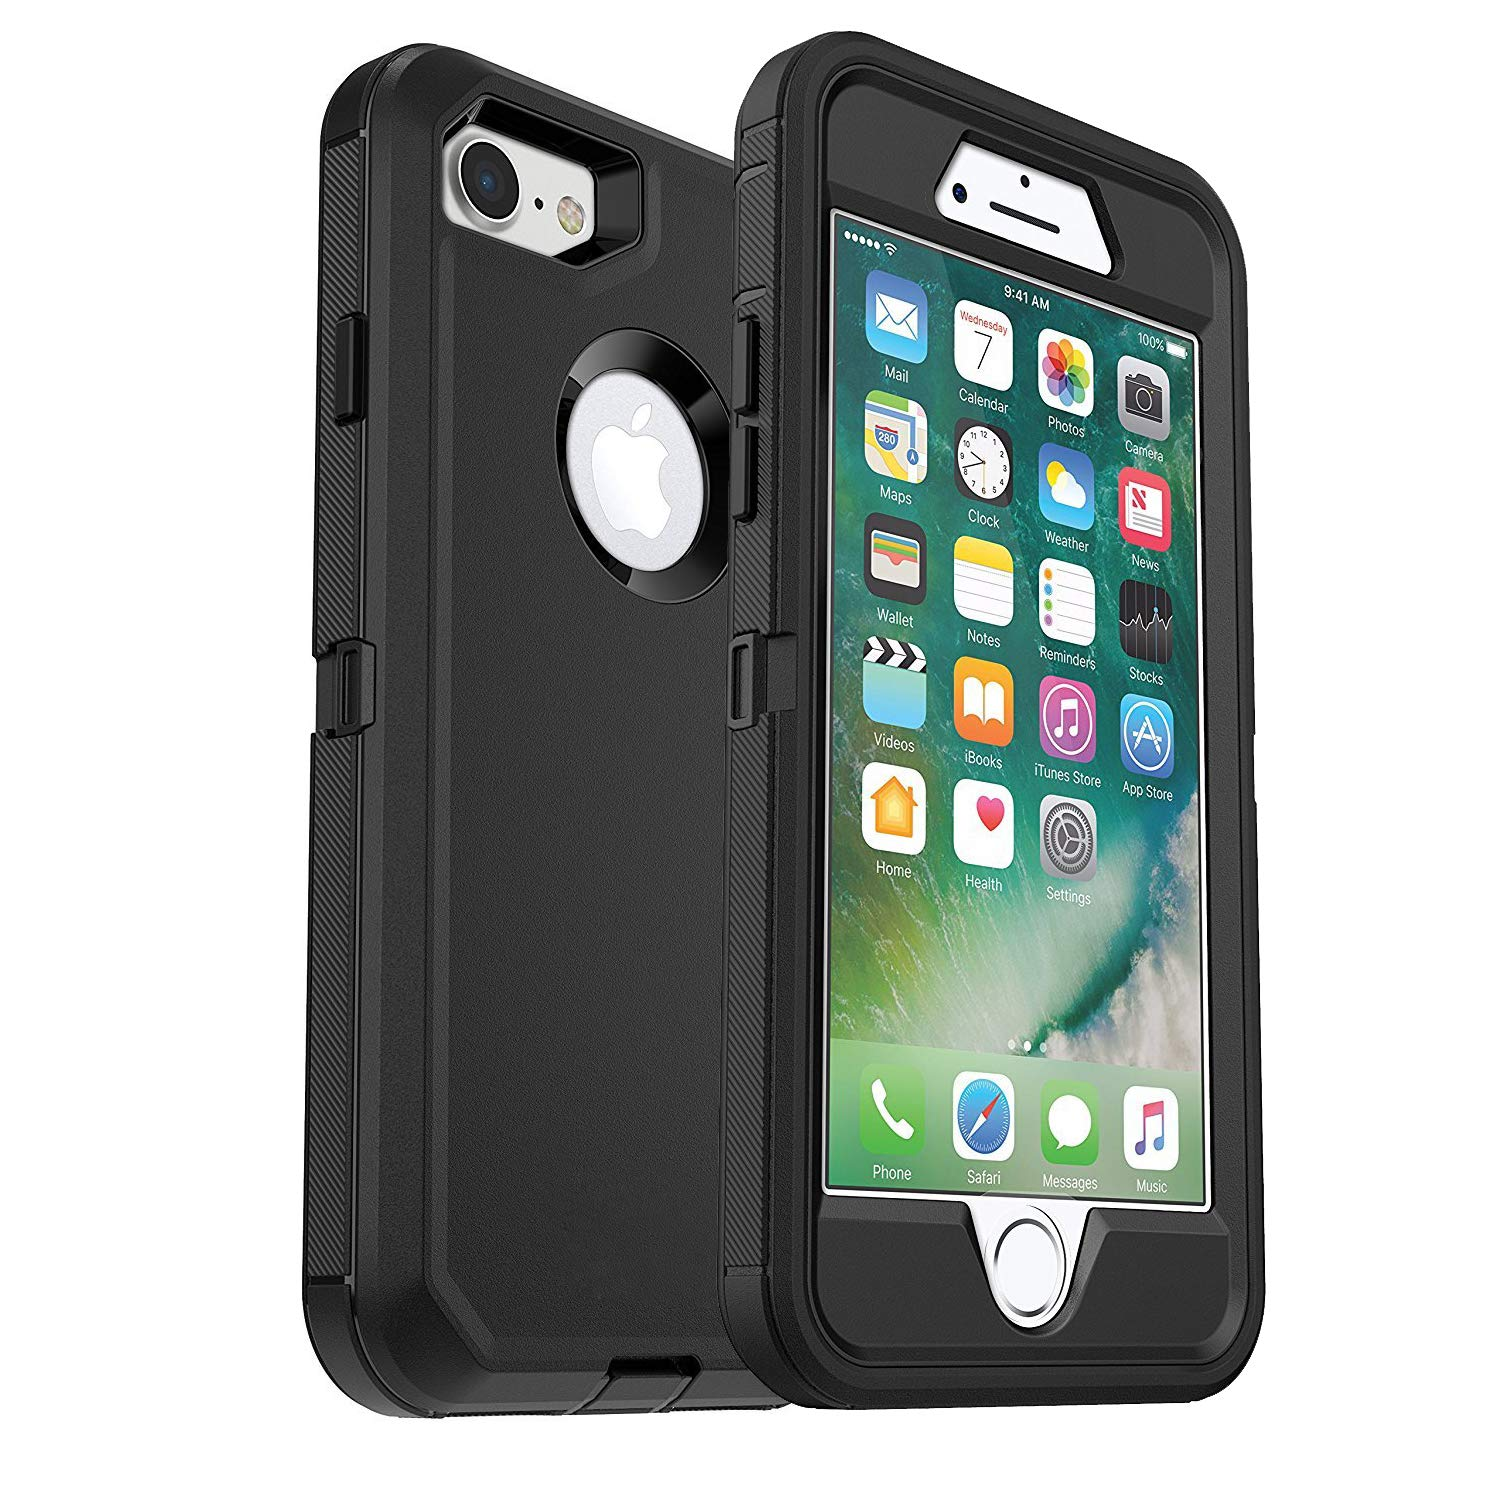 iPhone 7 Defender Case (Case Only) MAET iPhone 8 Heavy Duty Case Built-in Screen Protector Rugged Rubber Case Compatible Phone 7&iPhone 8 - Black